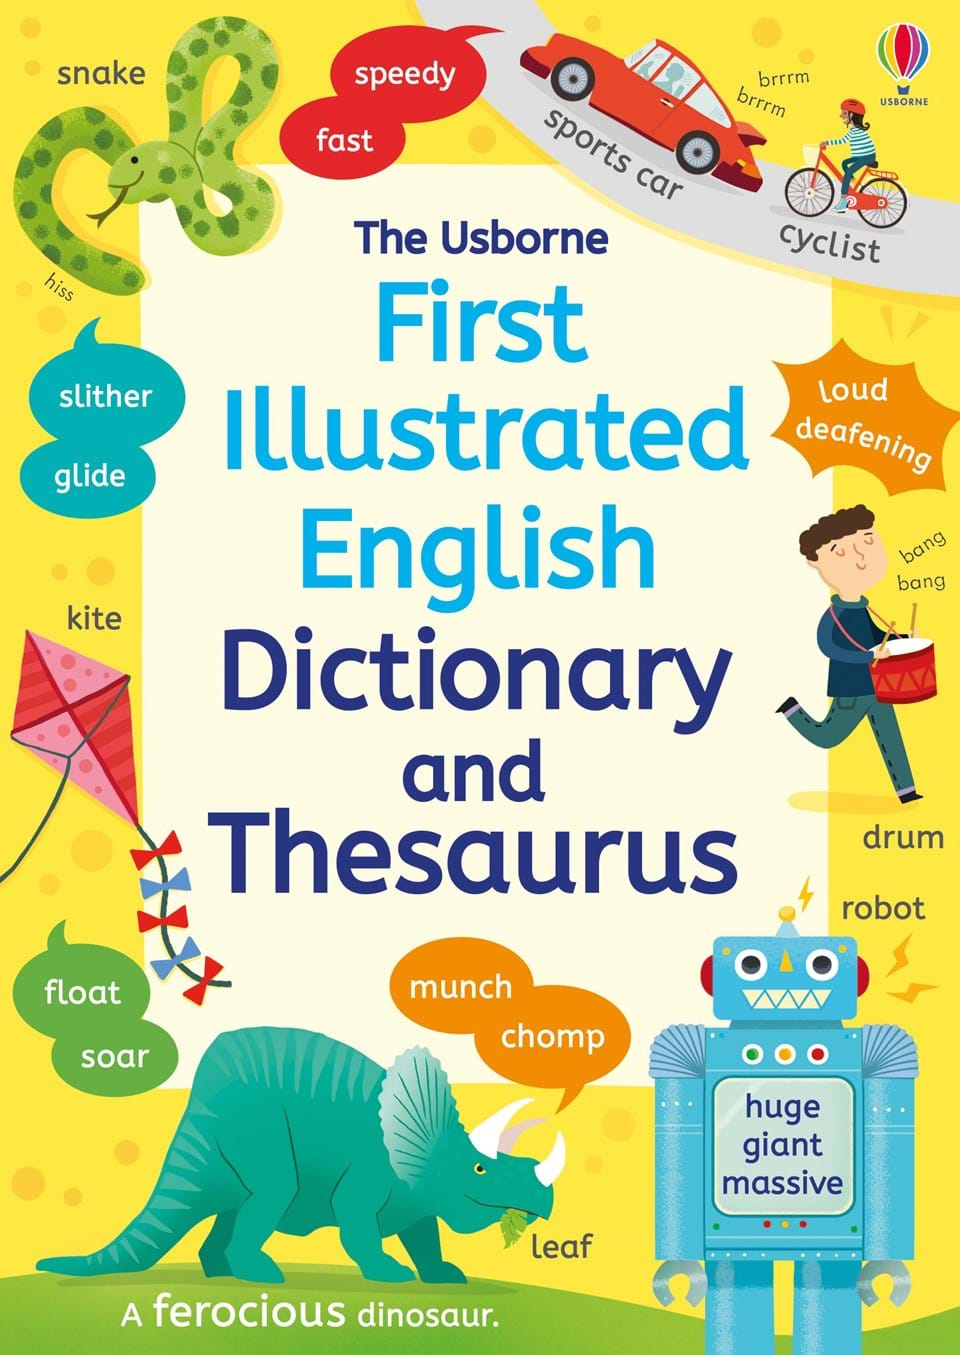 """First illustrated dictionary and thesaurus"""" at Usborne Children's Books"""